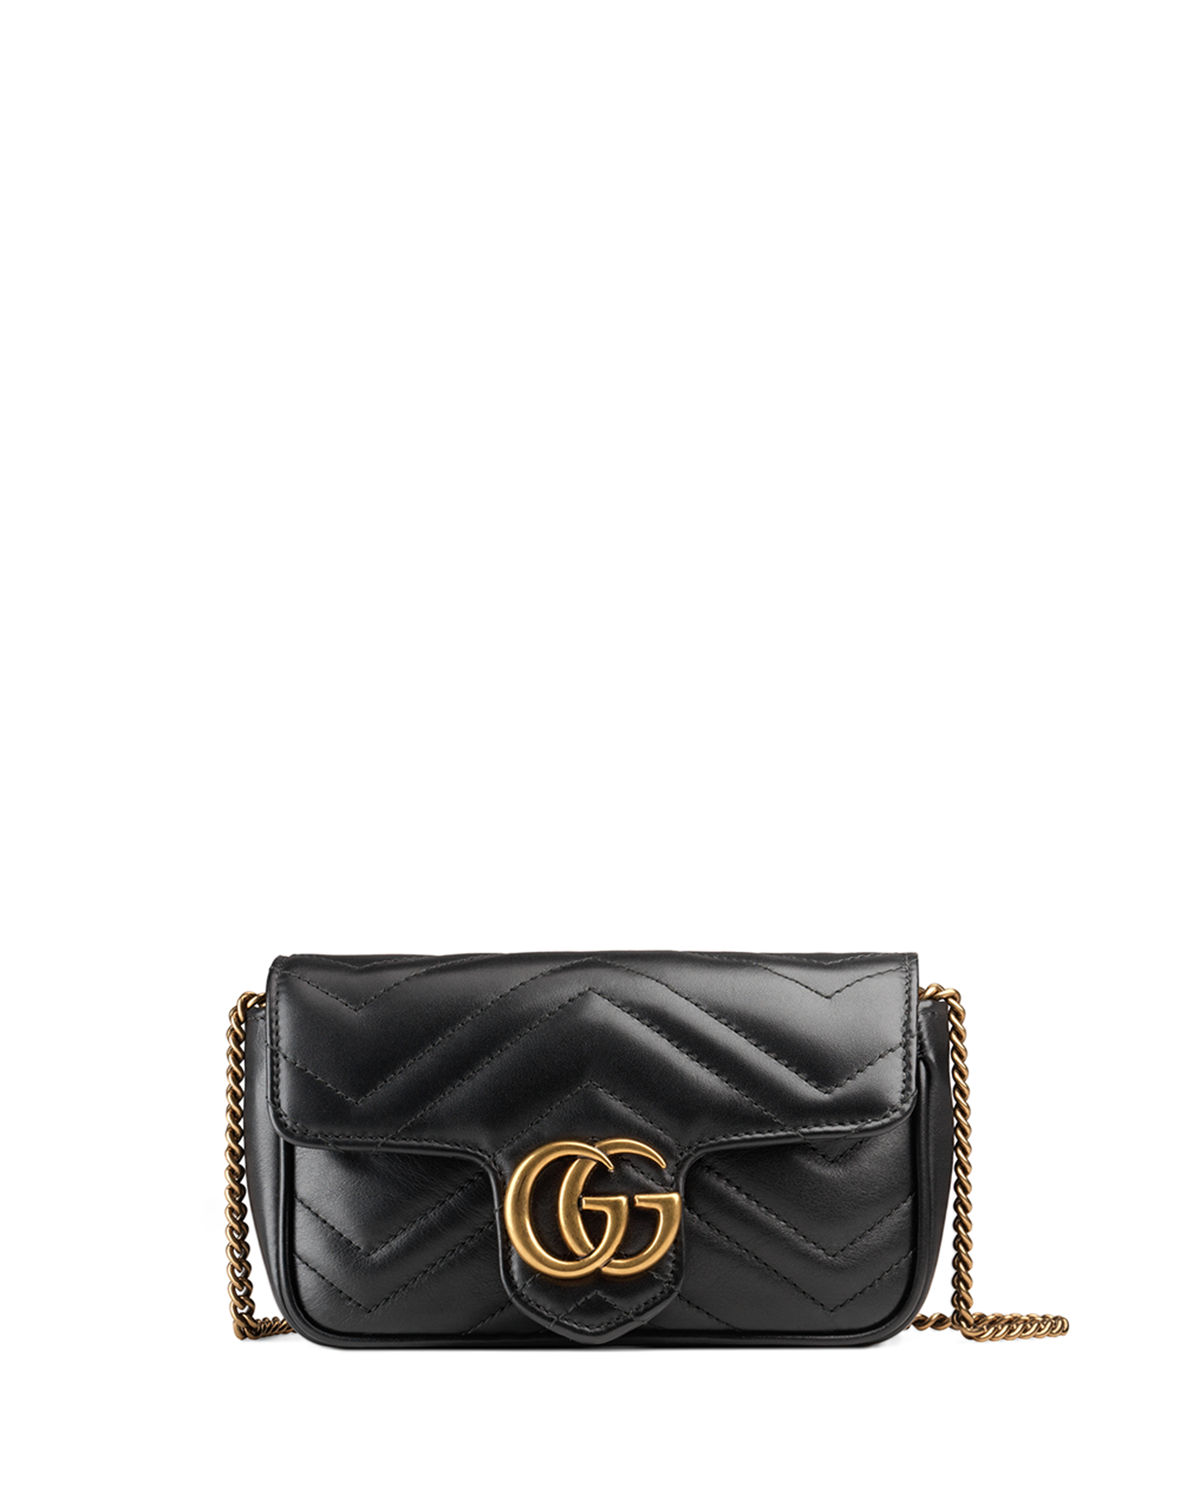 3efb05ebe2f Gucci GG Marmont Matelasse Leather Super Mini Bag